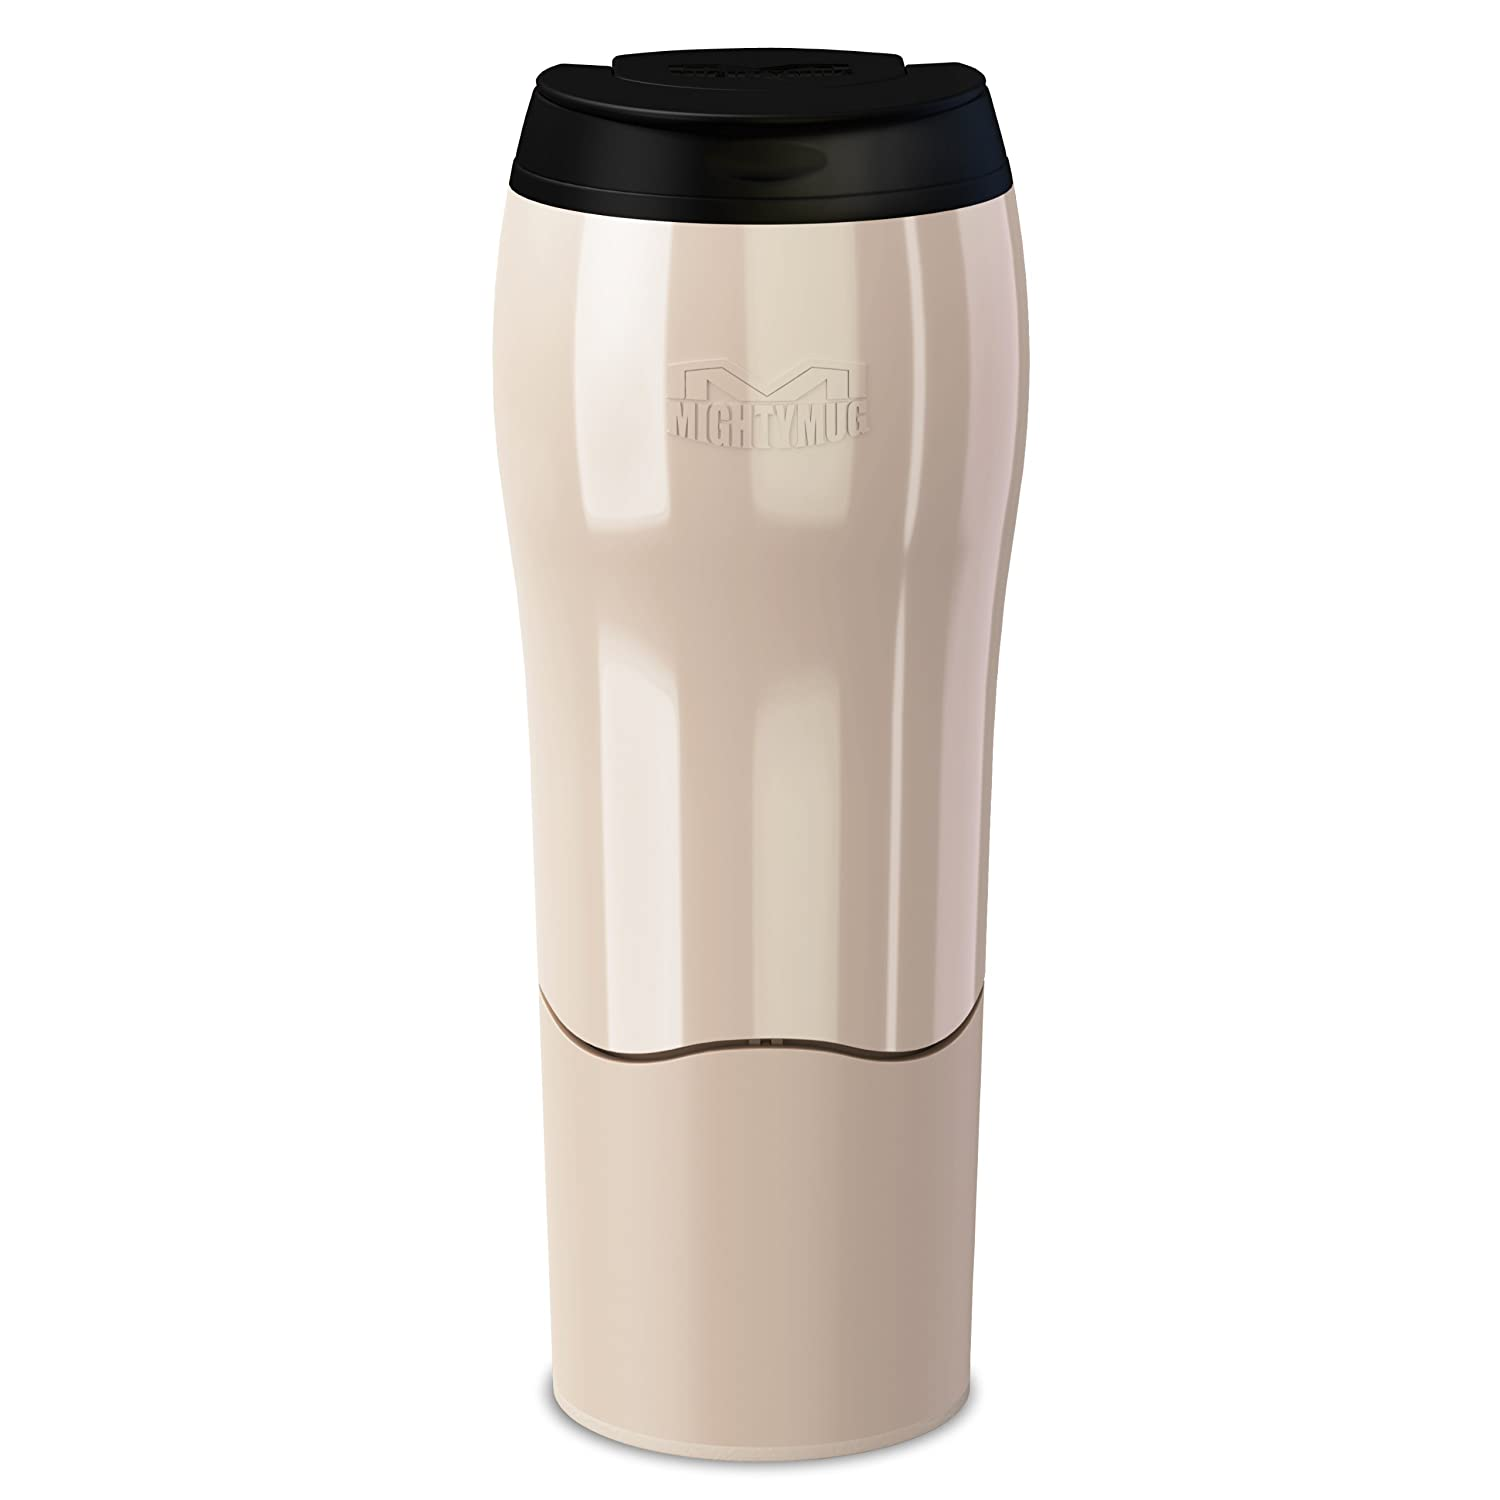 Wonderful Amazon.com: Dexam Mighty Mug Travel Mug 'the mug that won't fall  GY82